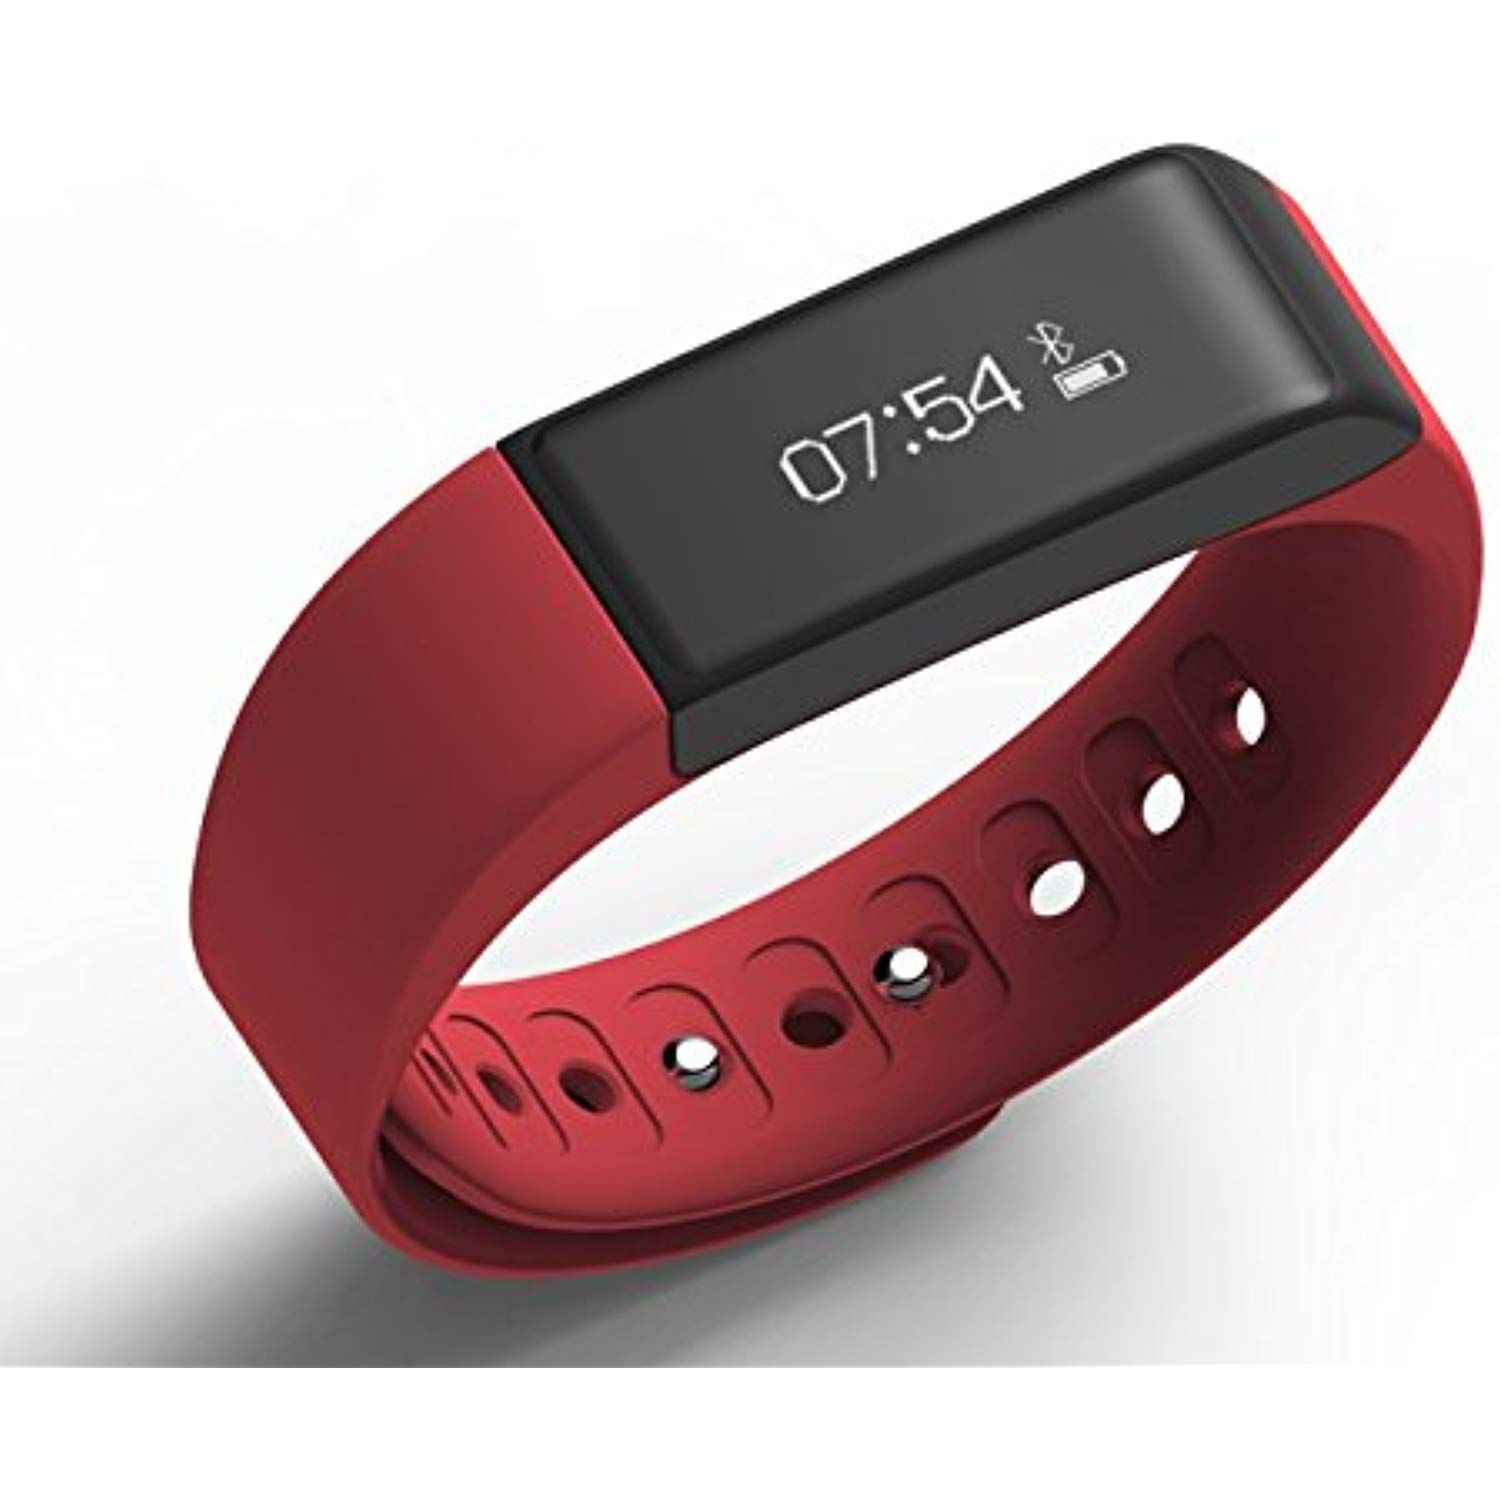 iWOWNfit i5 Plus Fitness Tracker Smart Bracelet Band with Deep/Light Sleep  Monitor and Call Text Display, Steps Track Cal… | Smart bracelet,  Wristband, Plus fitness